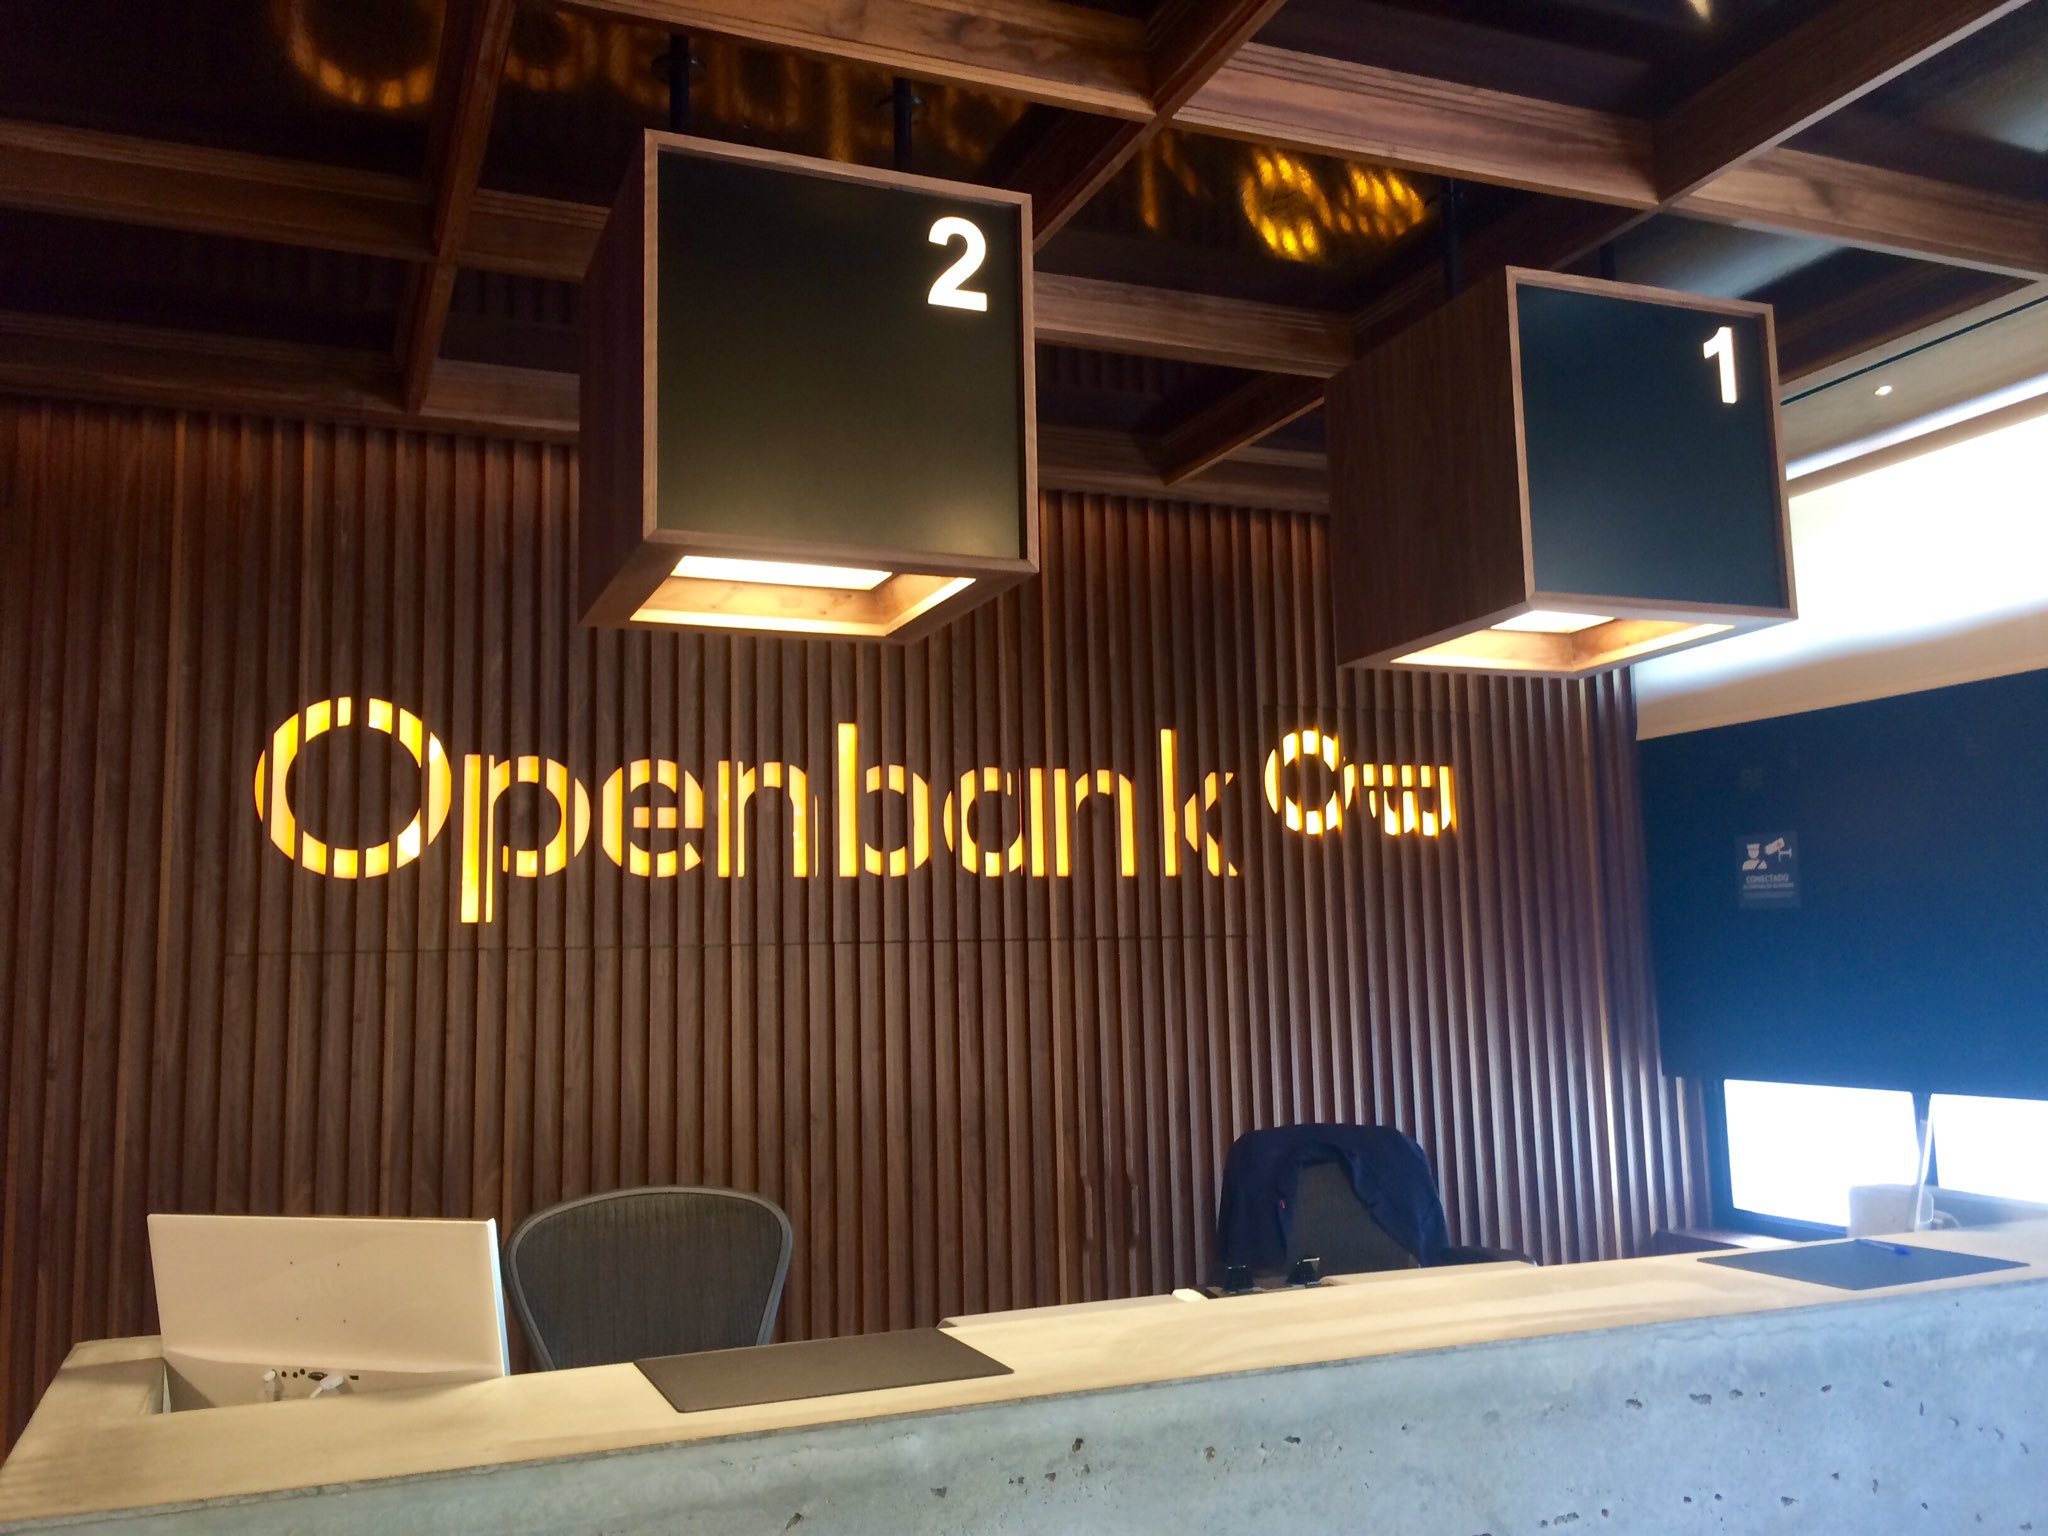 Spain s first fully digital bank openbank in major for Openbank madrid oficinas